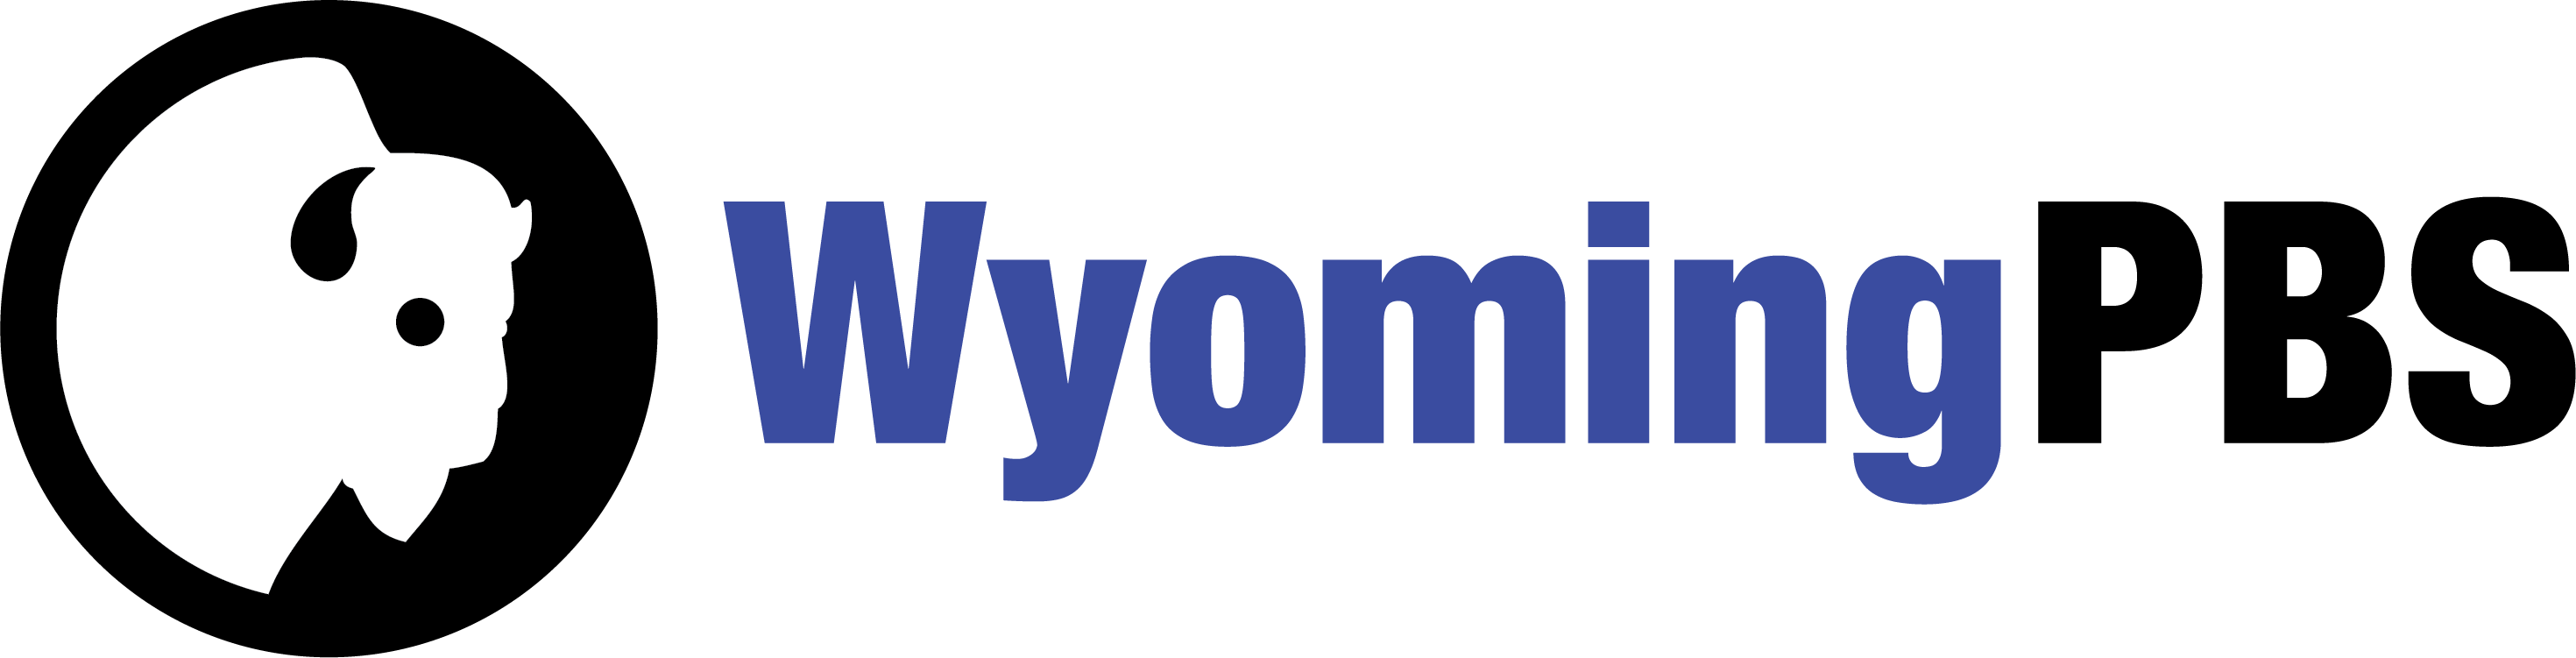 Wyoming PBS Logo